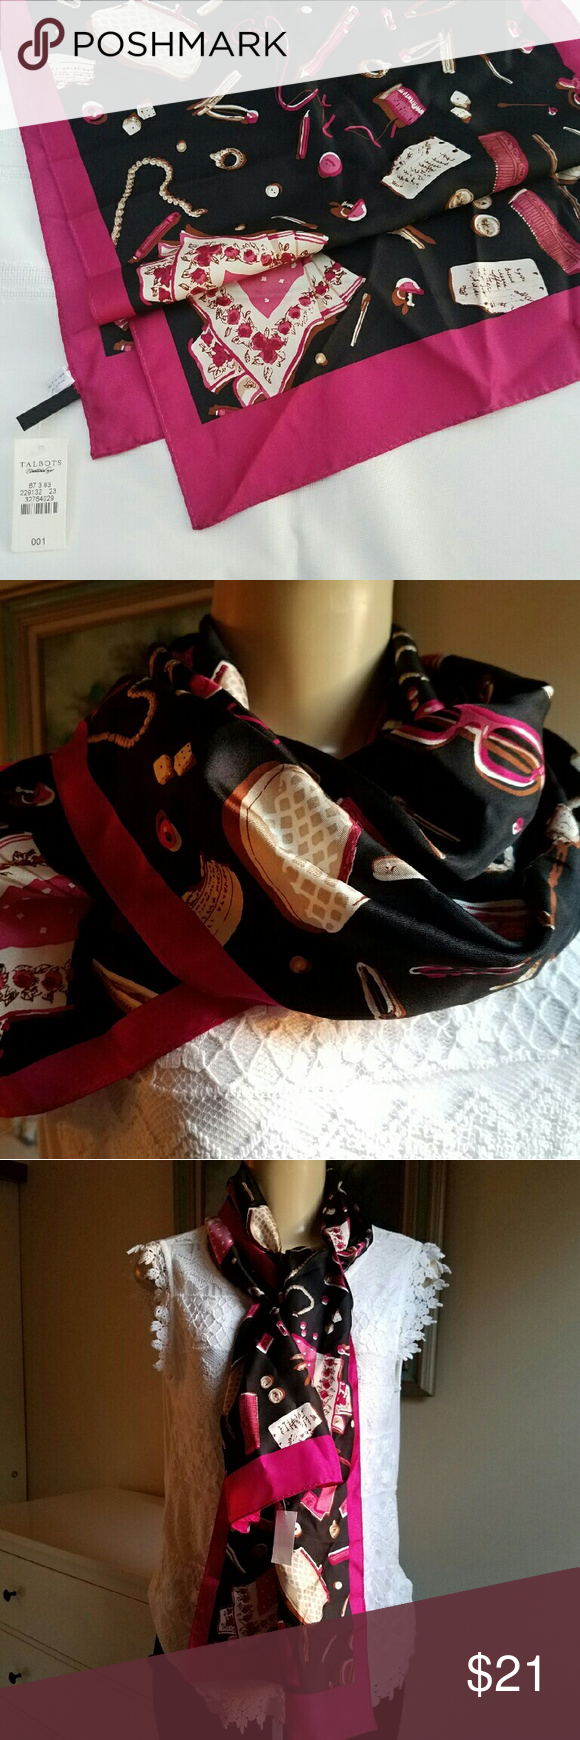 Talbots black silk scarf NWT 100% silk scarf with jewerly and accesories printing. 14 inch W, 60 inch L. Talbots Accessories Scarves & Wraps